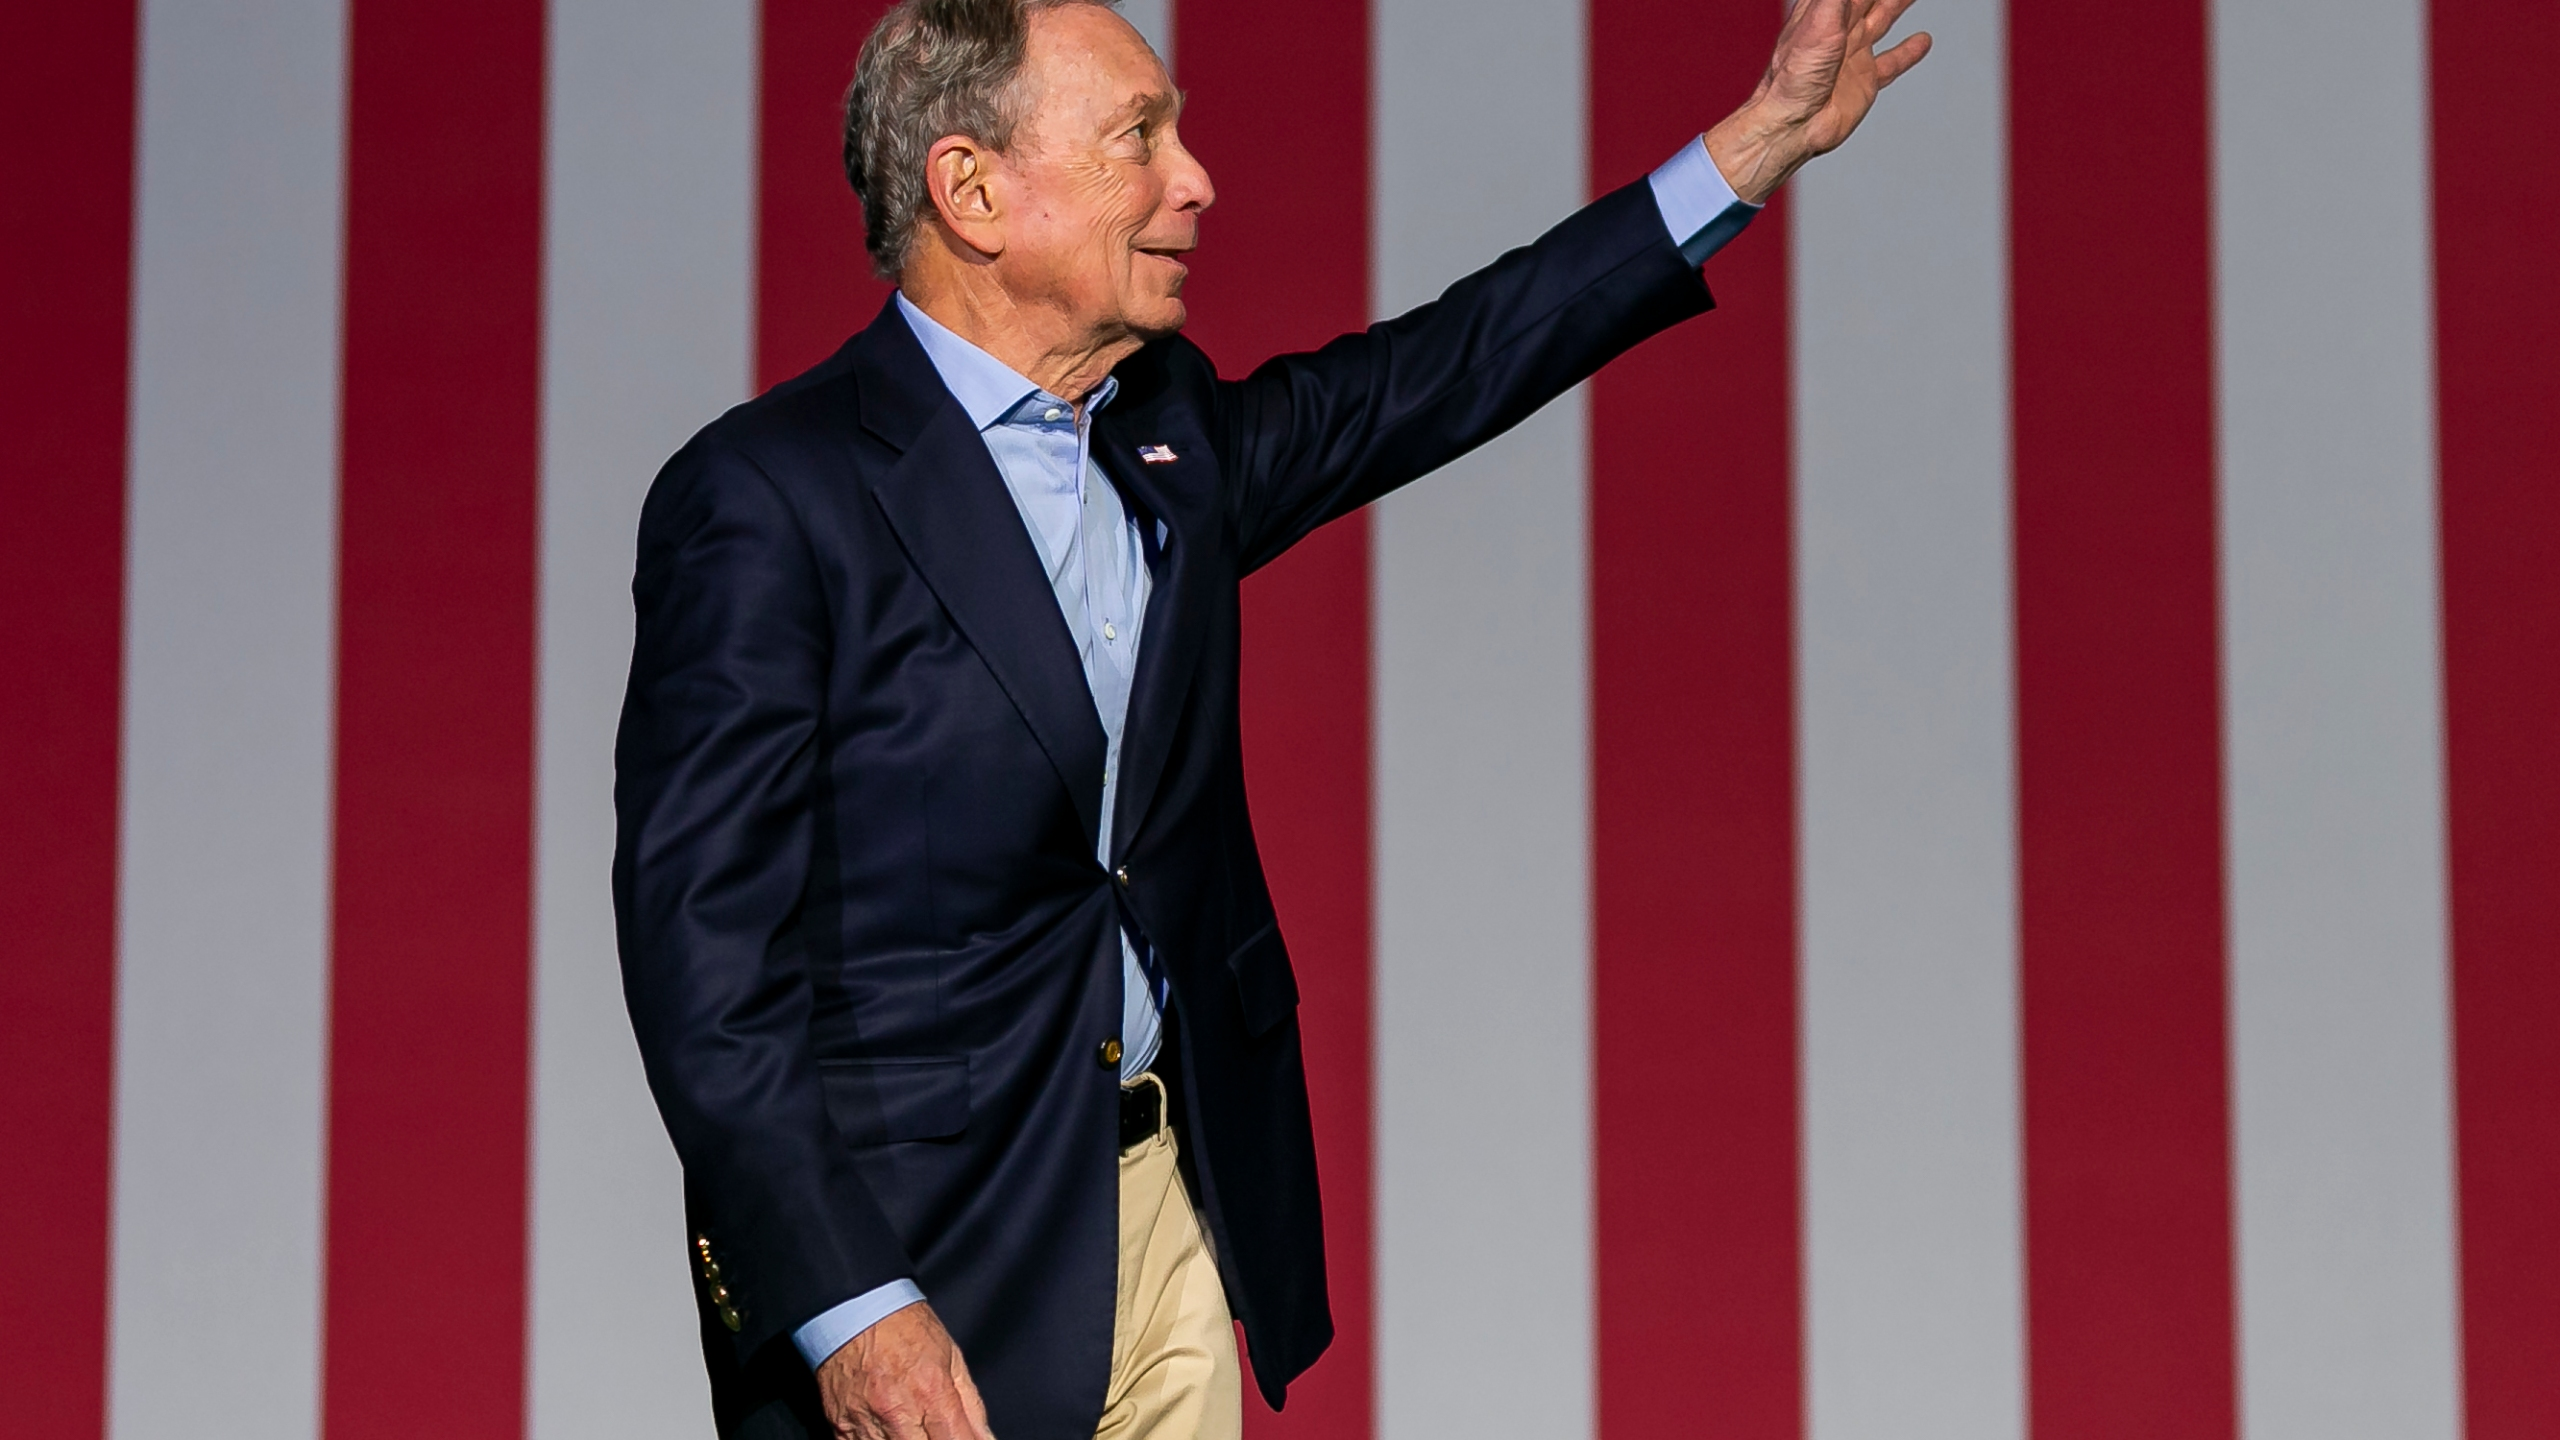 Bloomberg waving in front of American flag